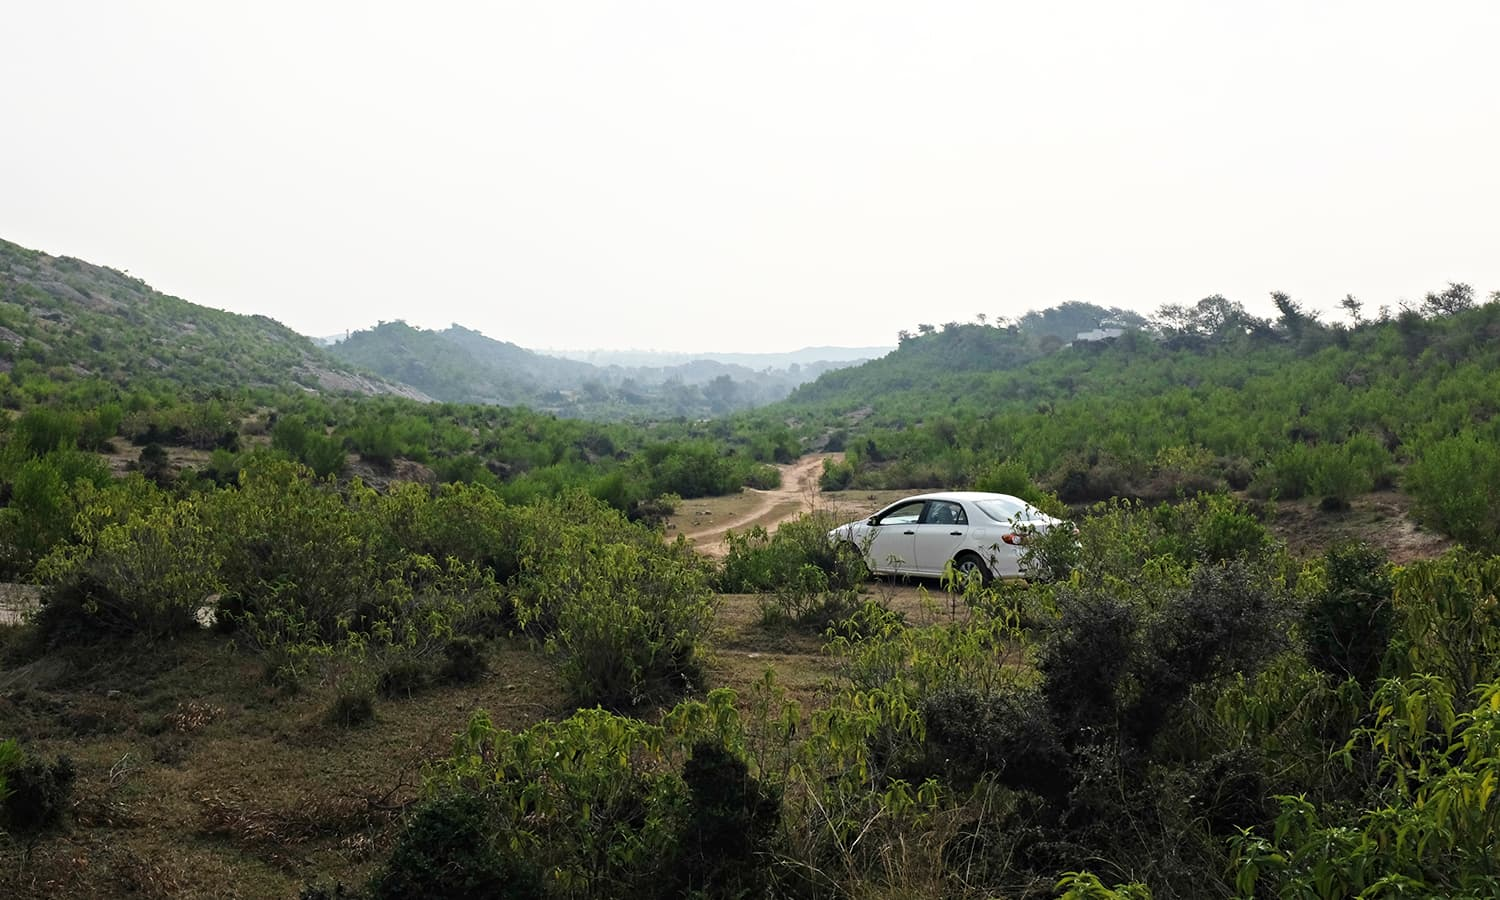 We pick an alternate road and hit a dead-end.